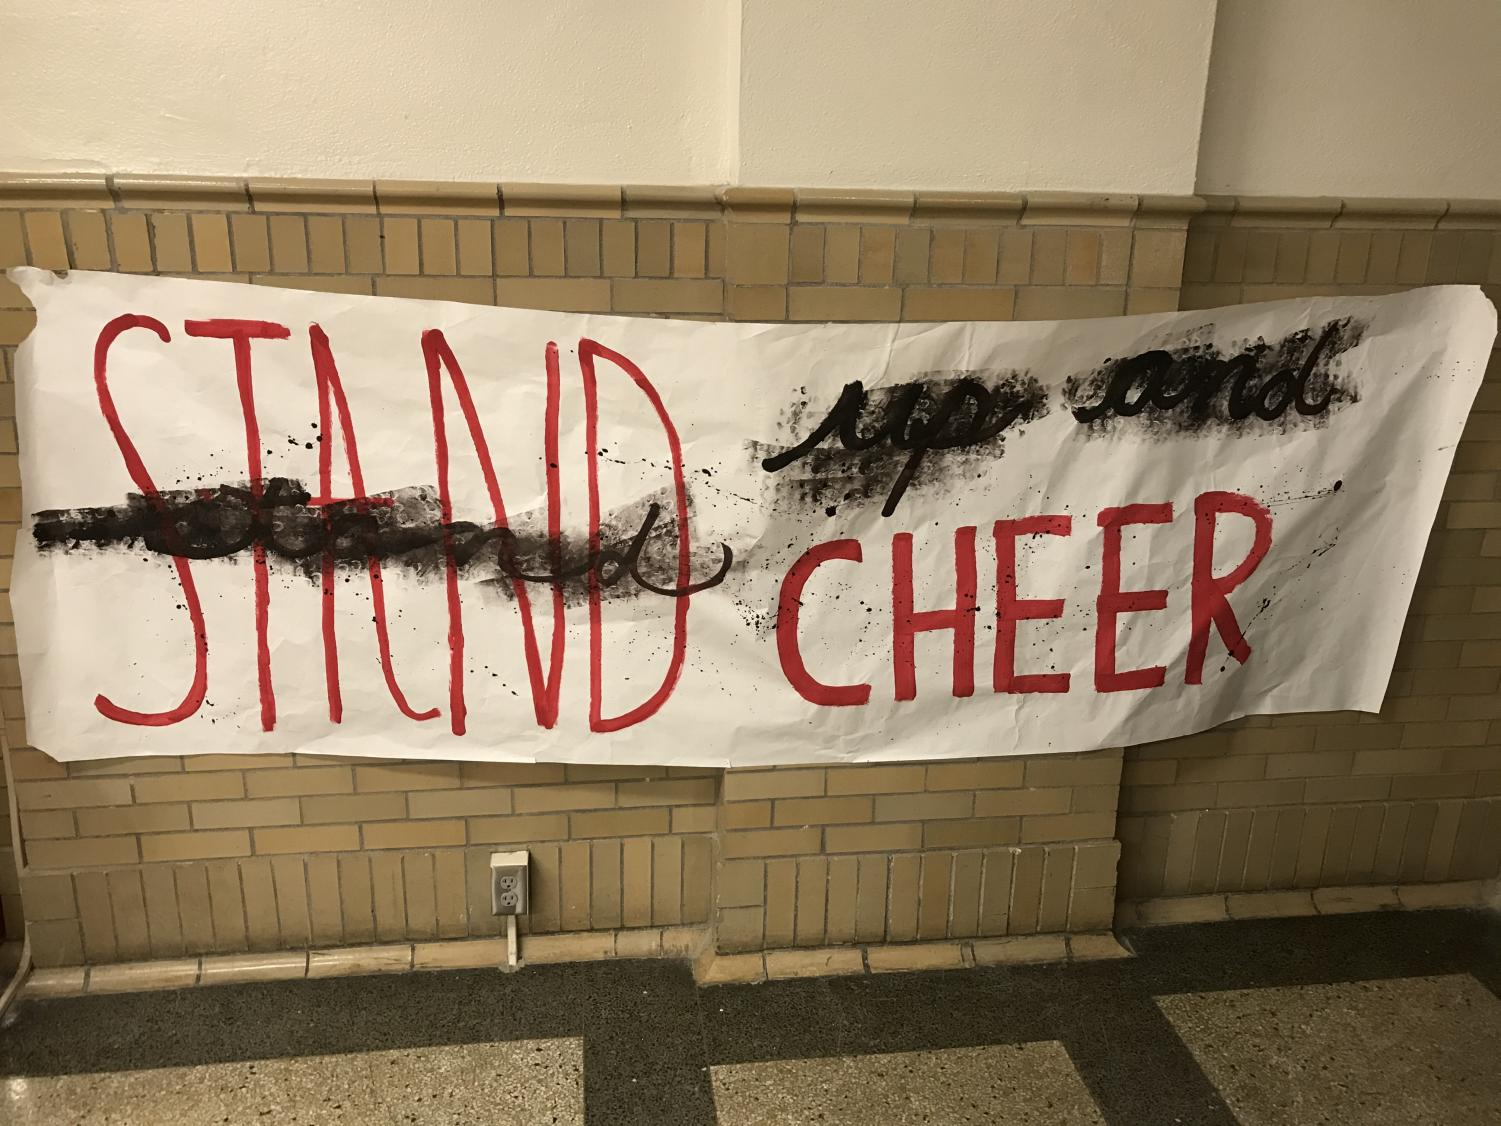 One of the many R/W Week posters at Manual. Photo by Tyler Lericos